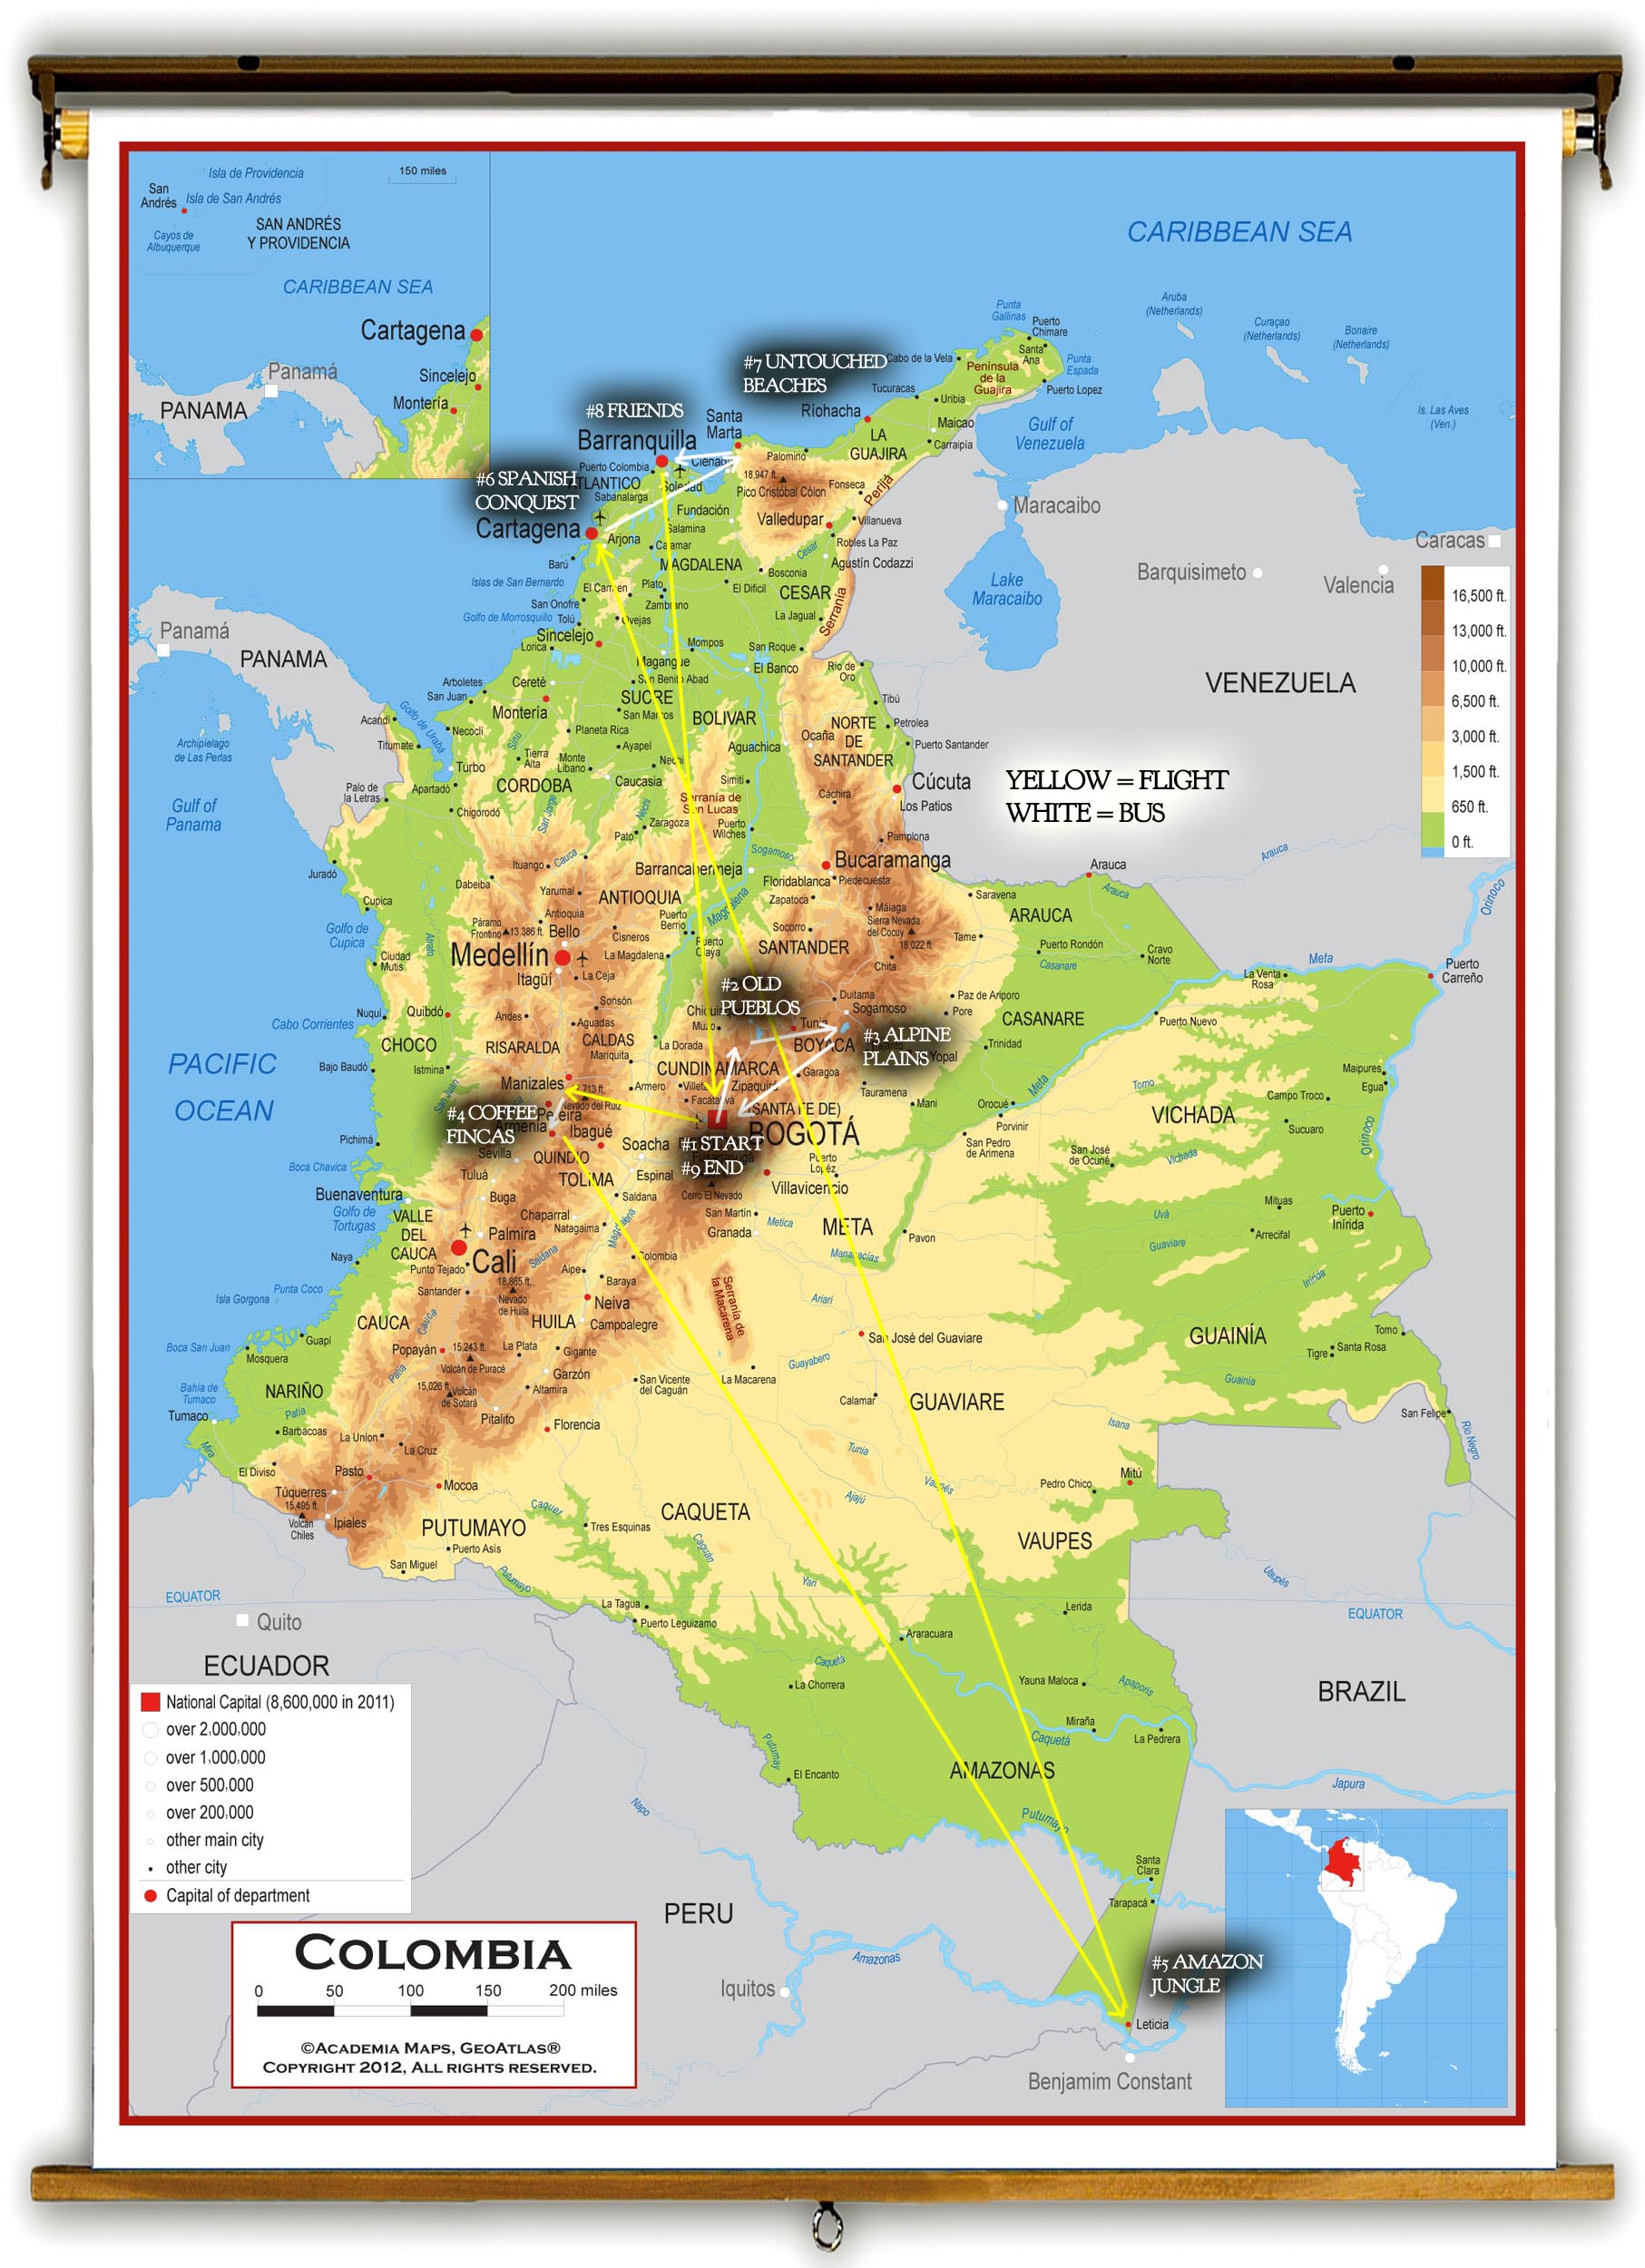 free range colombia  day  sleepless in bogota - we have an idea… colombia travel itinerary map